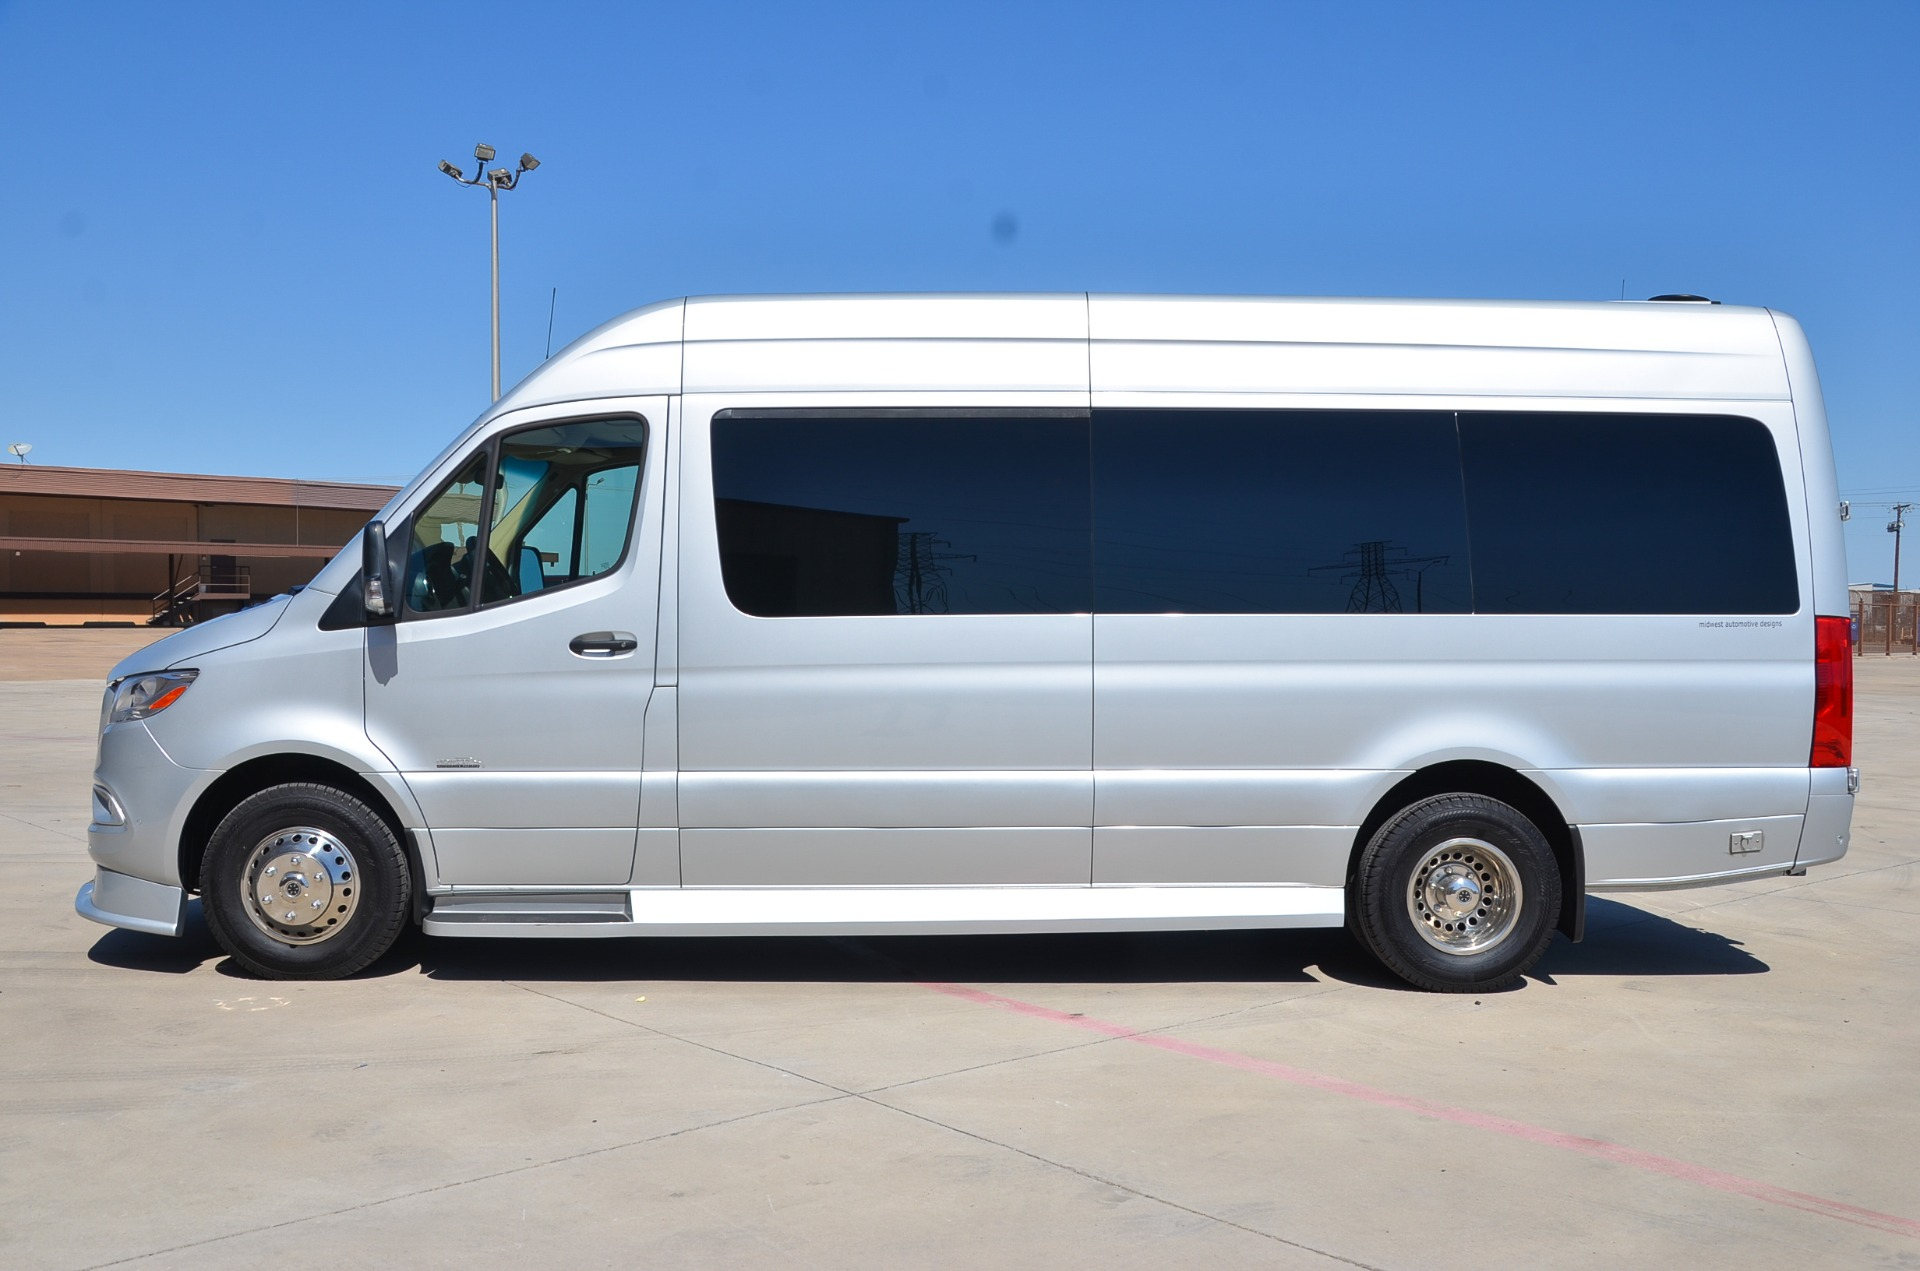 Used 2019 170 Mercedes-Benz Sprinter Midwest Automotive 3500XD Business Class for sale Call for price at Iconic Sprinters in Fort Worth TX 76106 1